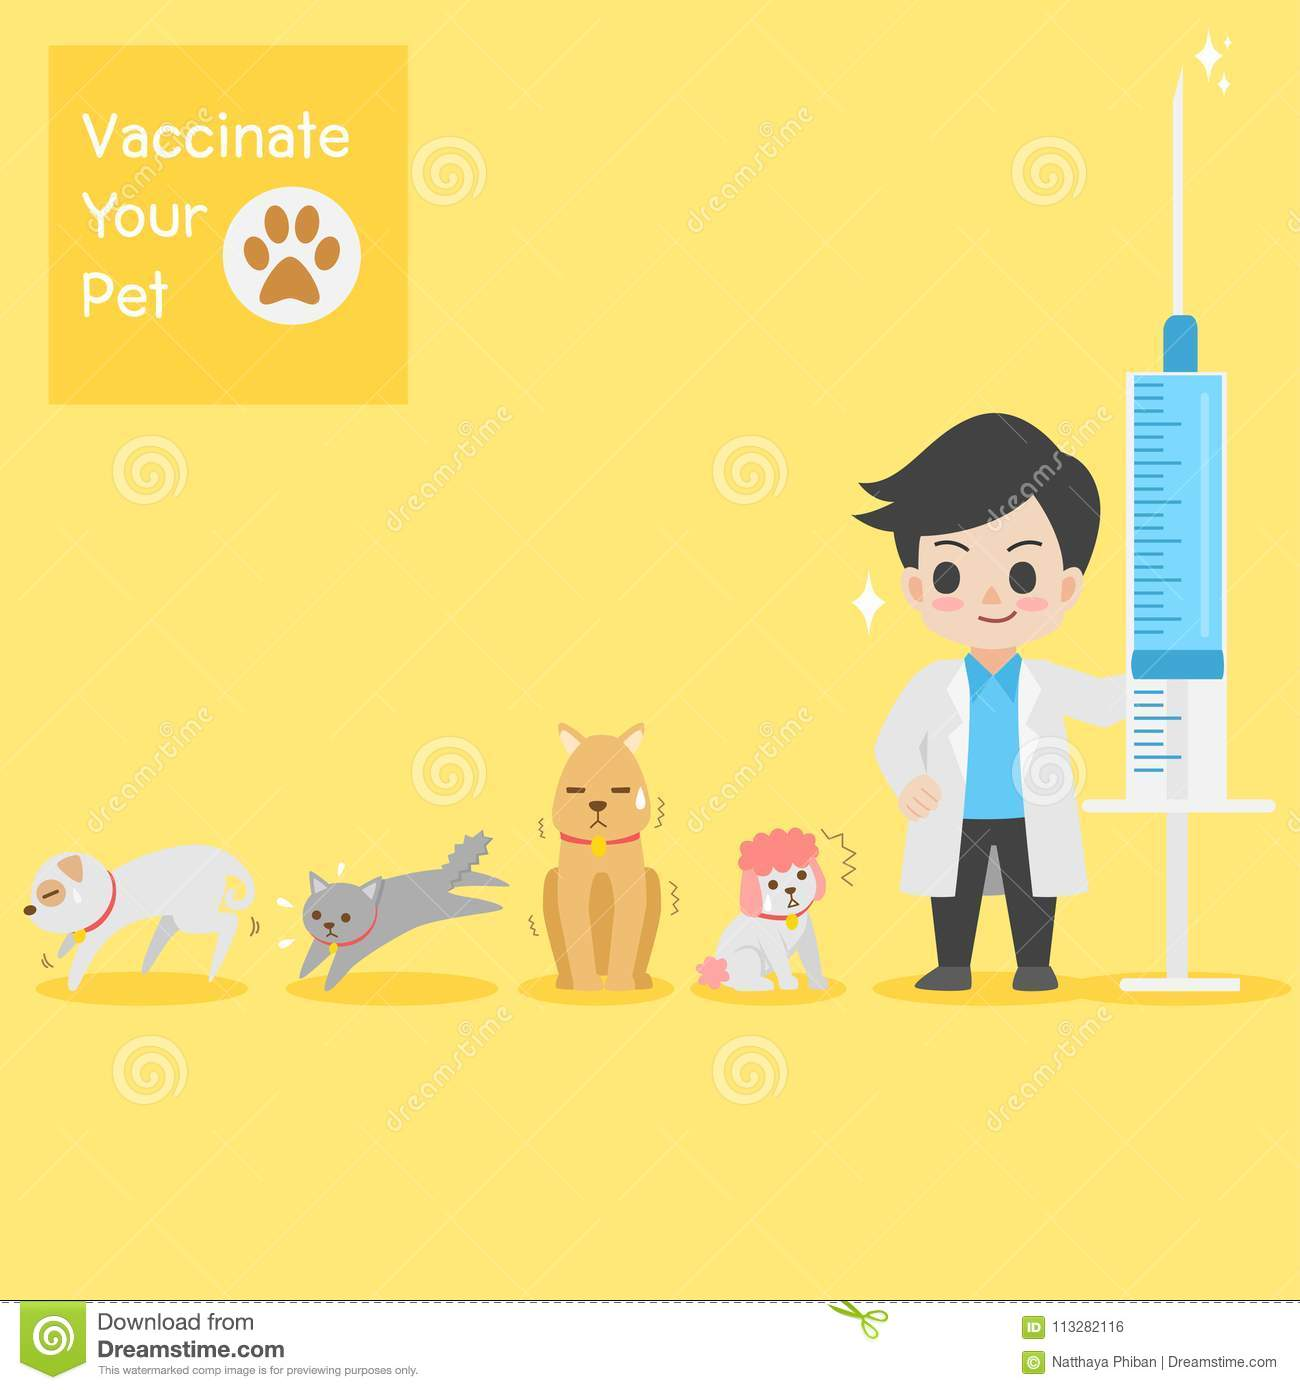 Frighten cute dogs, cat, doctor with injection needle character for vaccinate pets